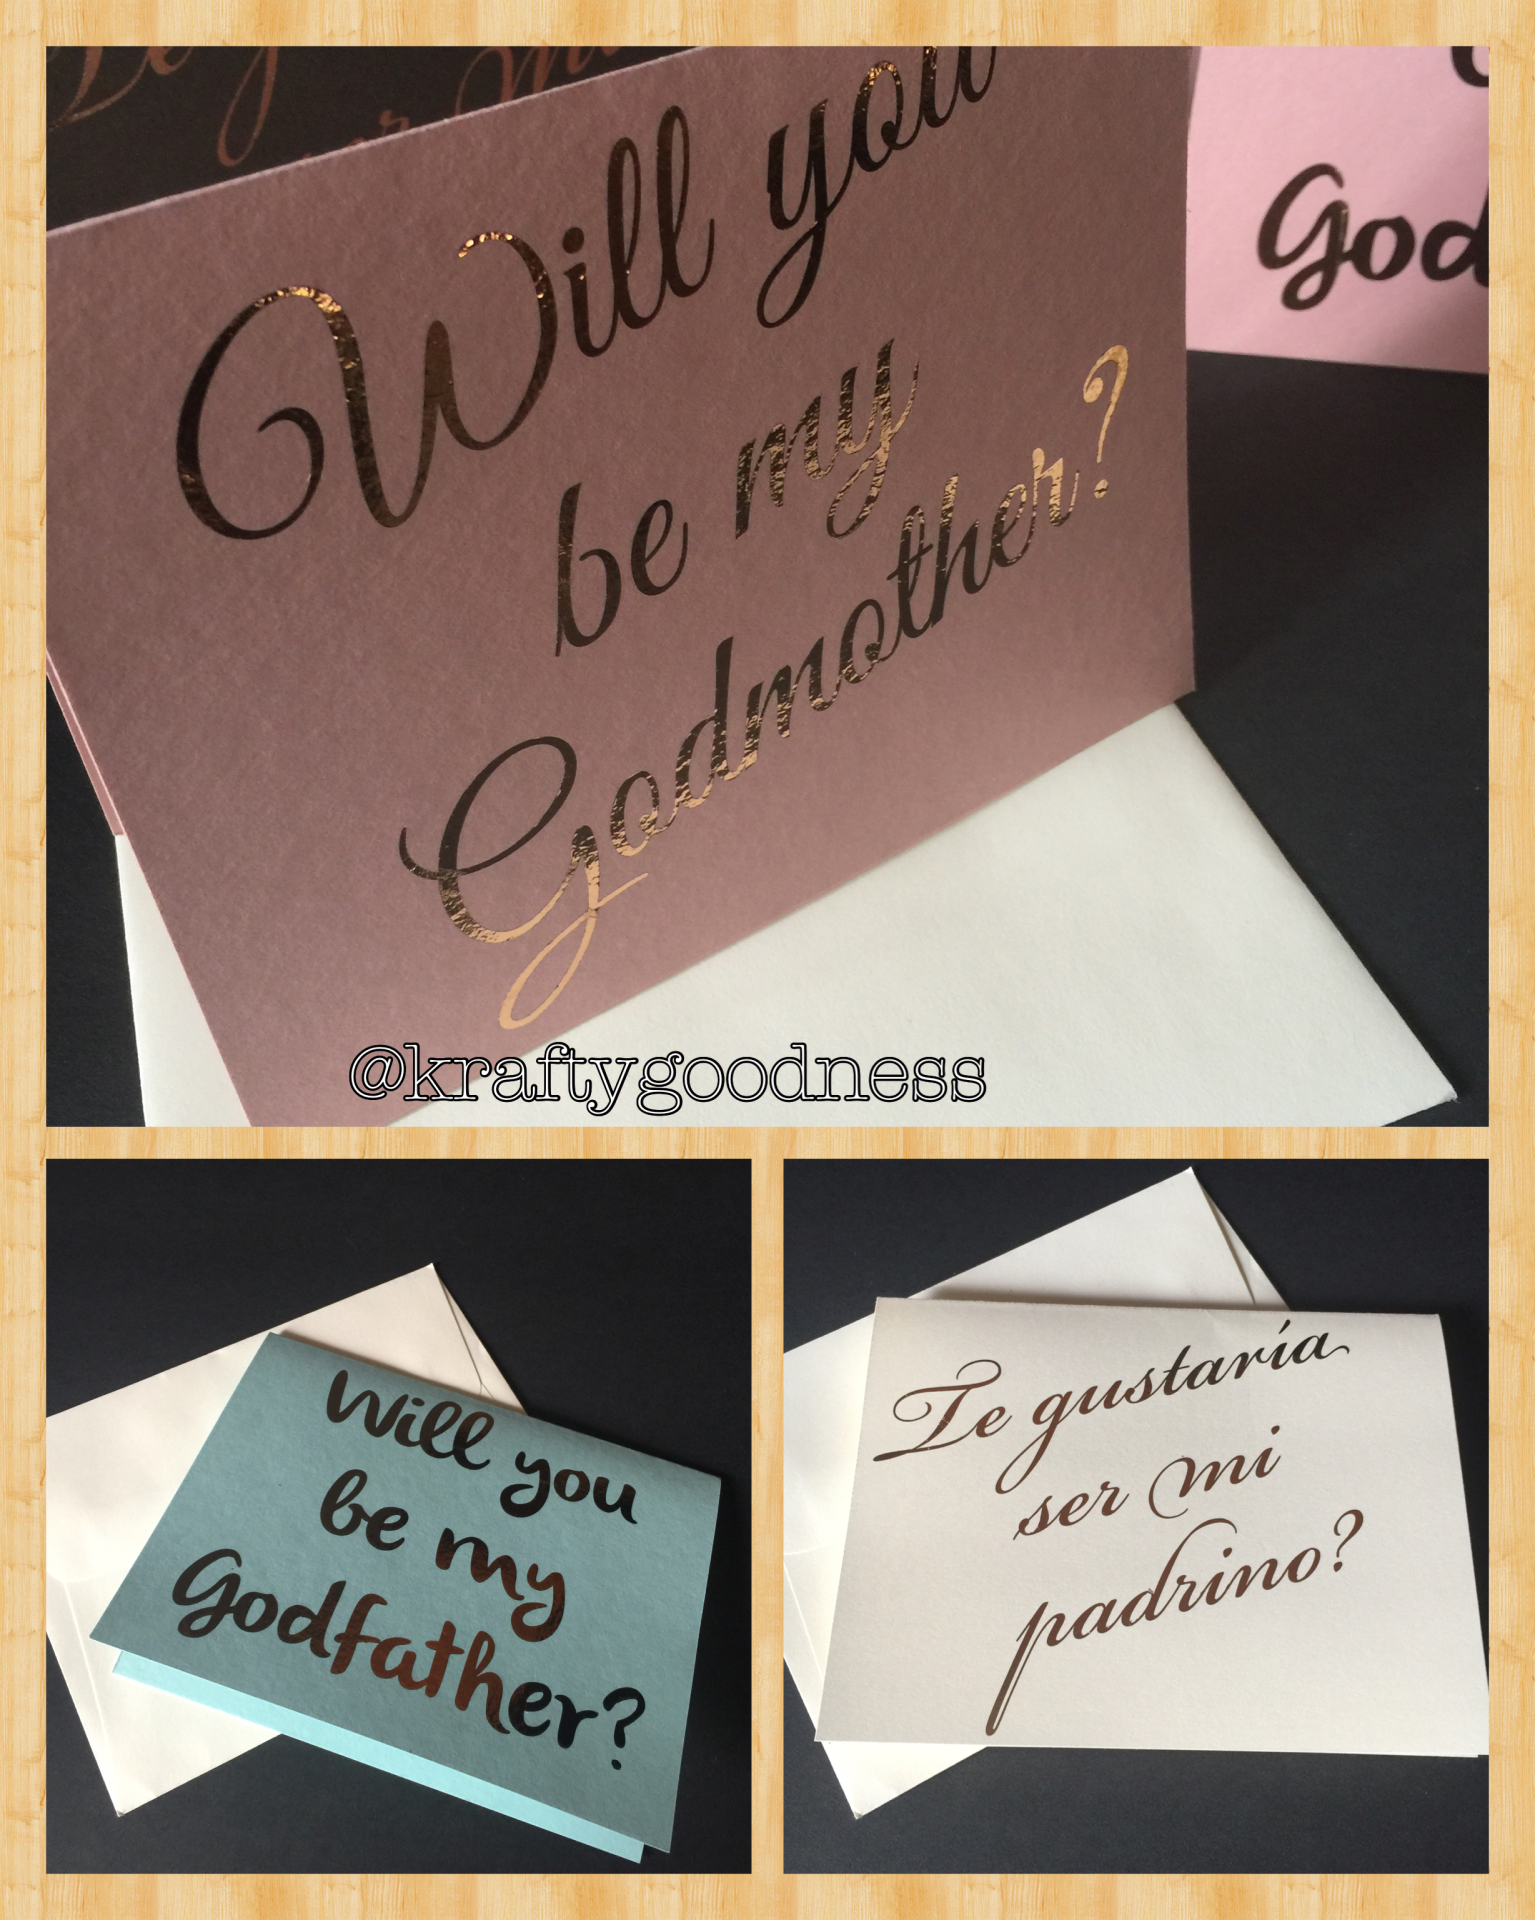 Foil Godmother card